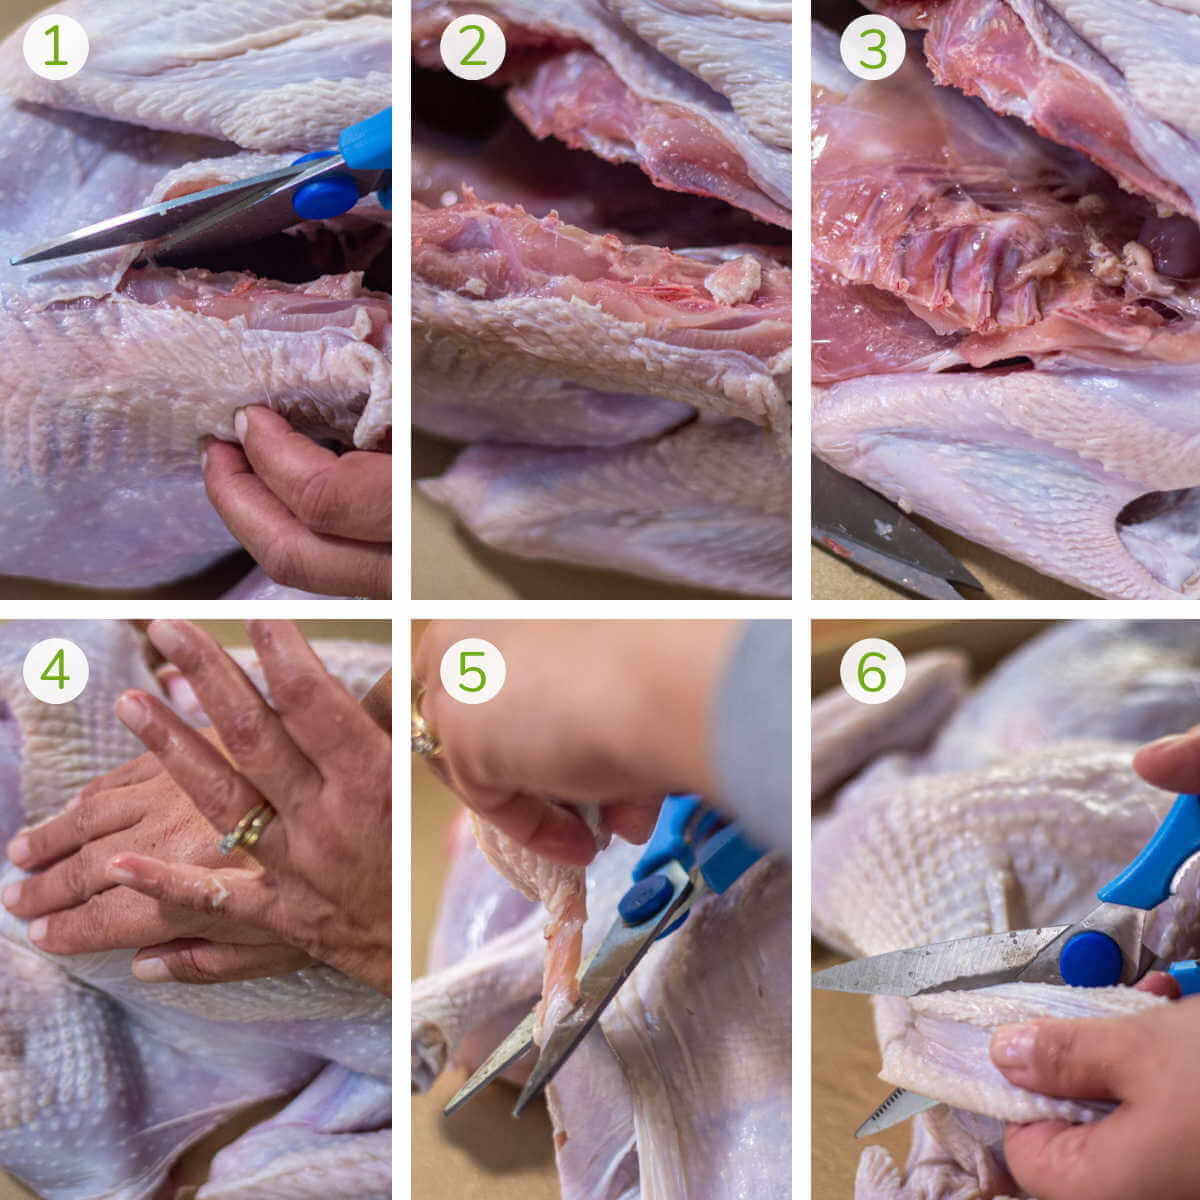 six photots showing how to butterfly the turkey by removing the spine and trimming the excess skin.